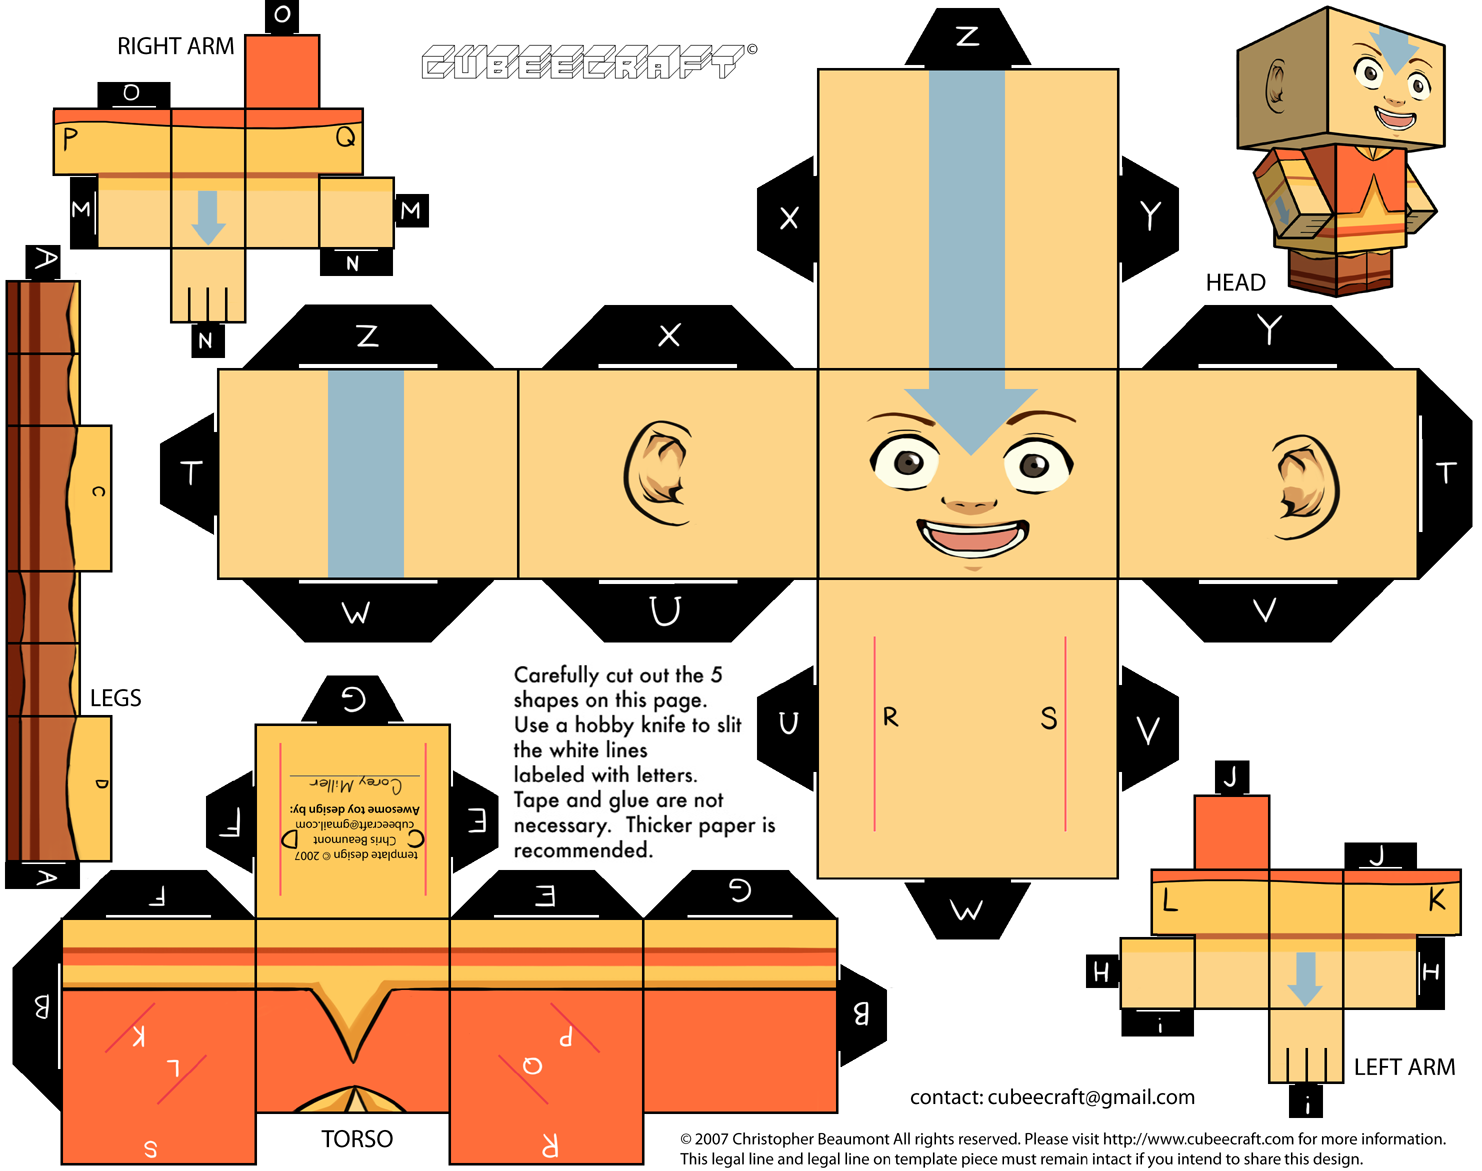 craft e family aang cubecraft by battousai777 png 1482 215 1171 craft 1482